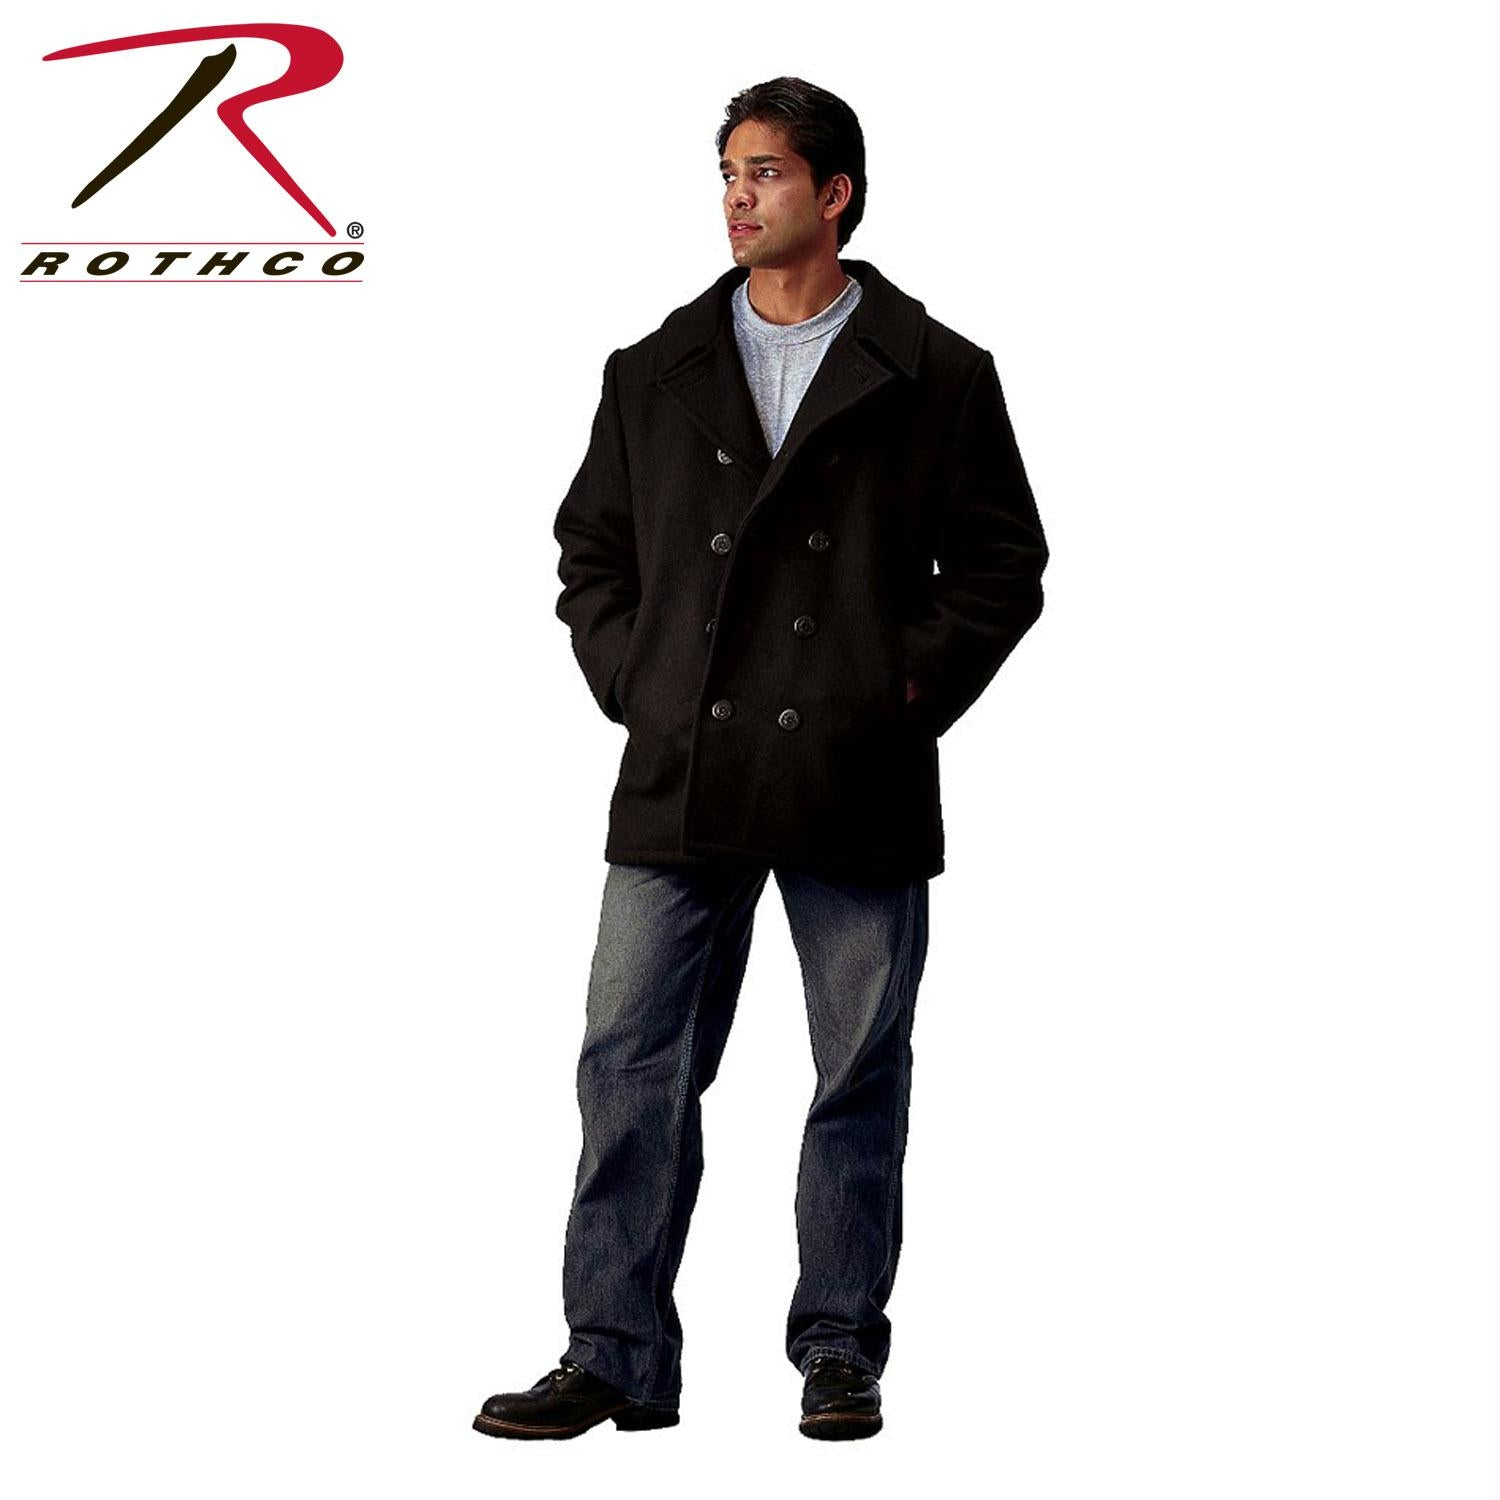 Rothco US Navy Type Pea Coat - Black / 5XL